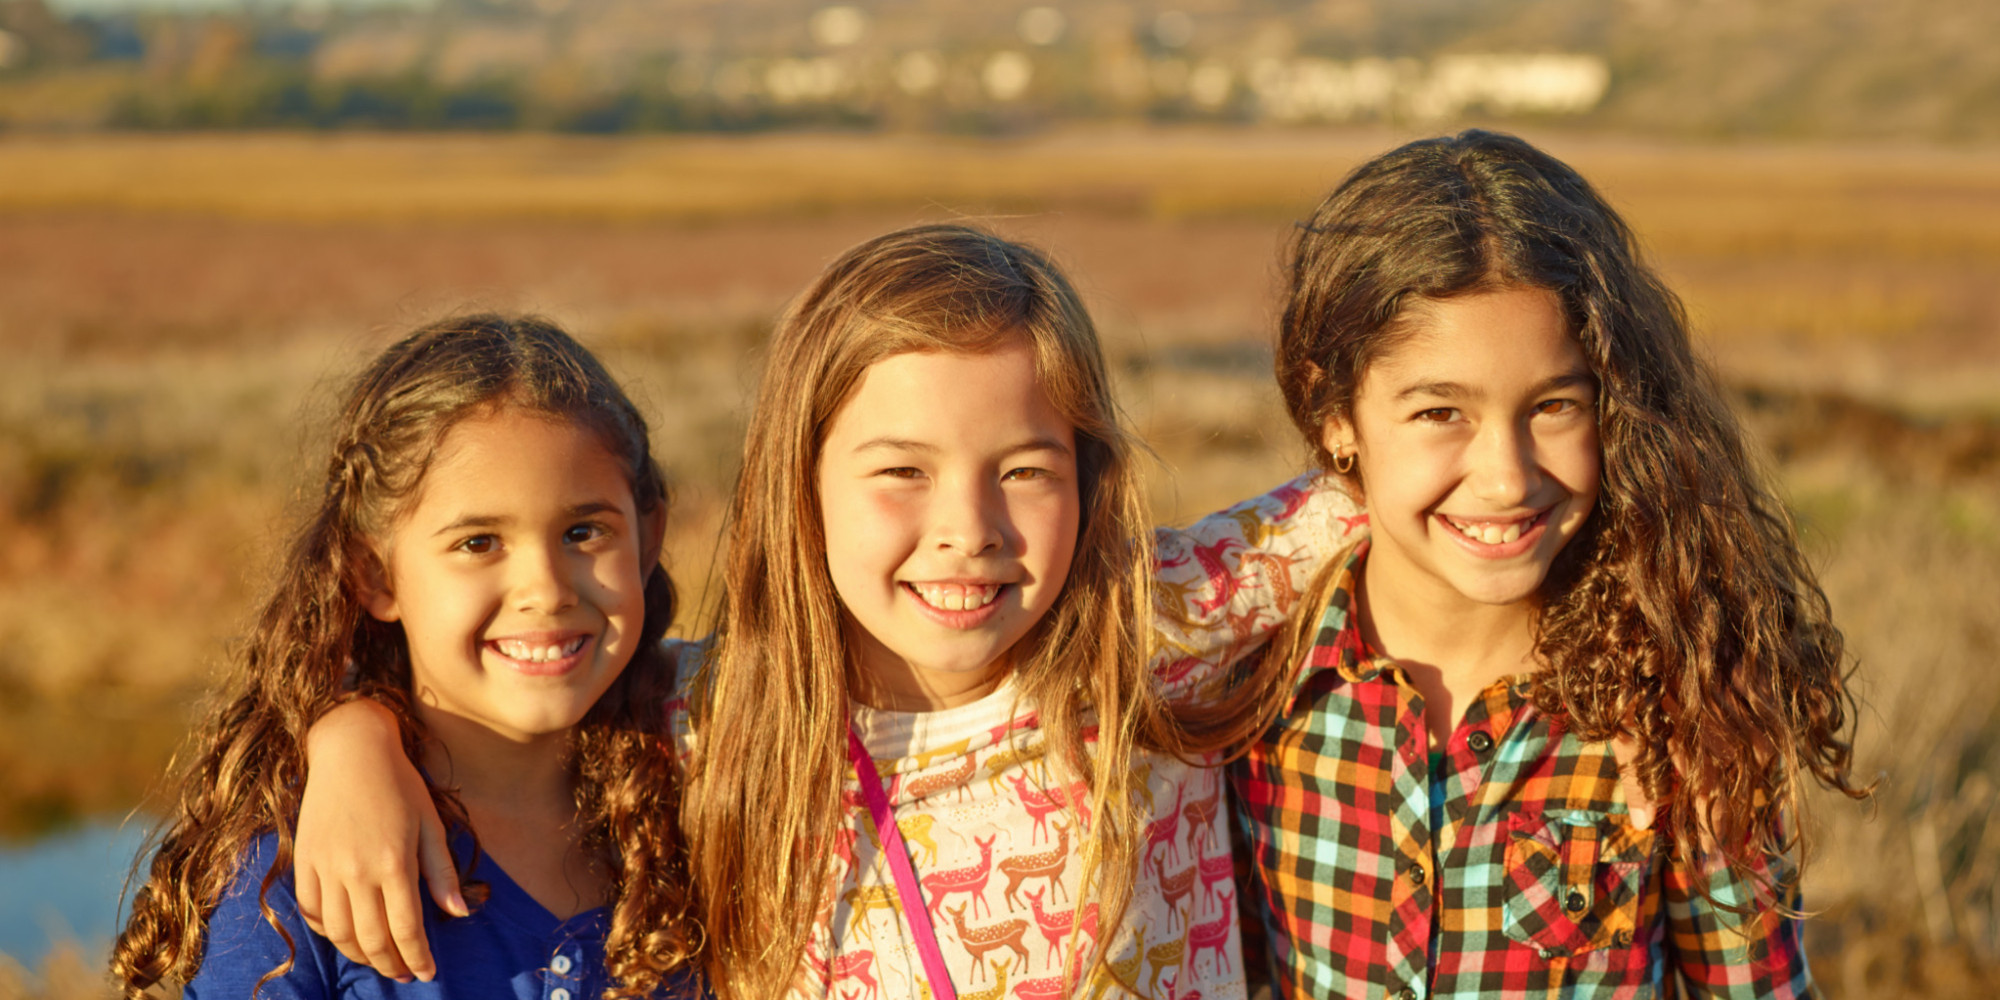 How to Help Your Child Make Friends | HuffPost